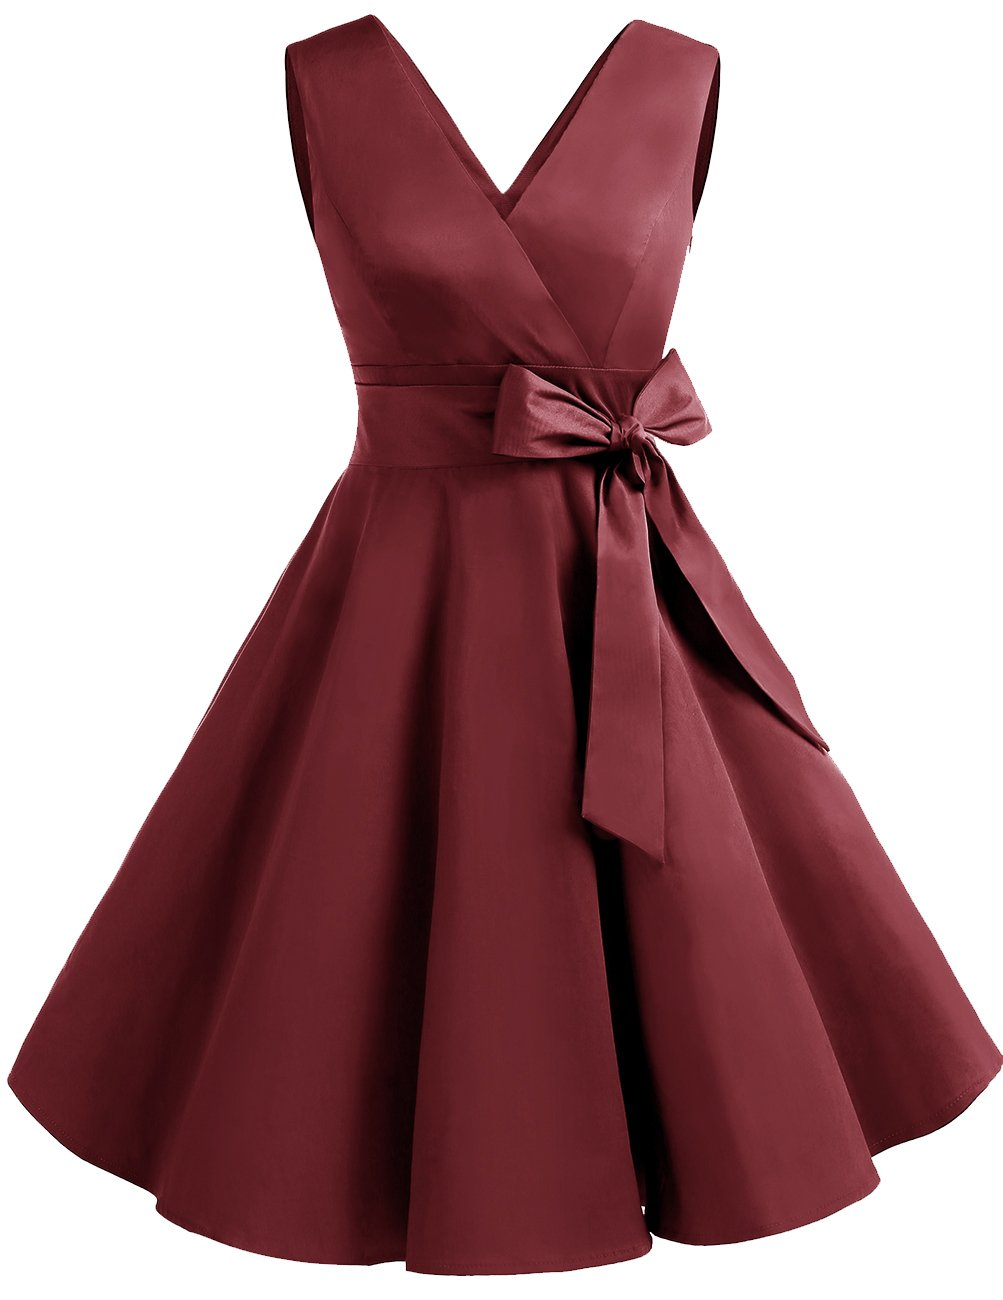 Available at Amazon: DRESSTELLS Vintage 1950s Solid Color V Neck Retro Swing Dress with Bow Tie